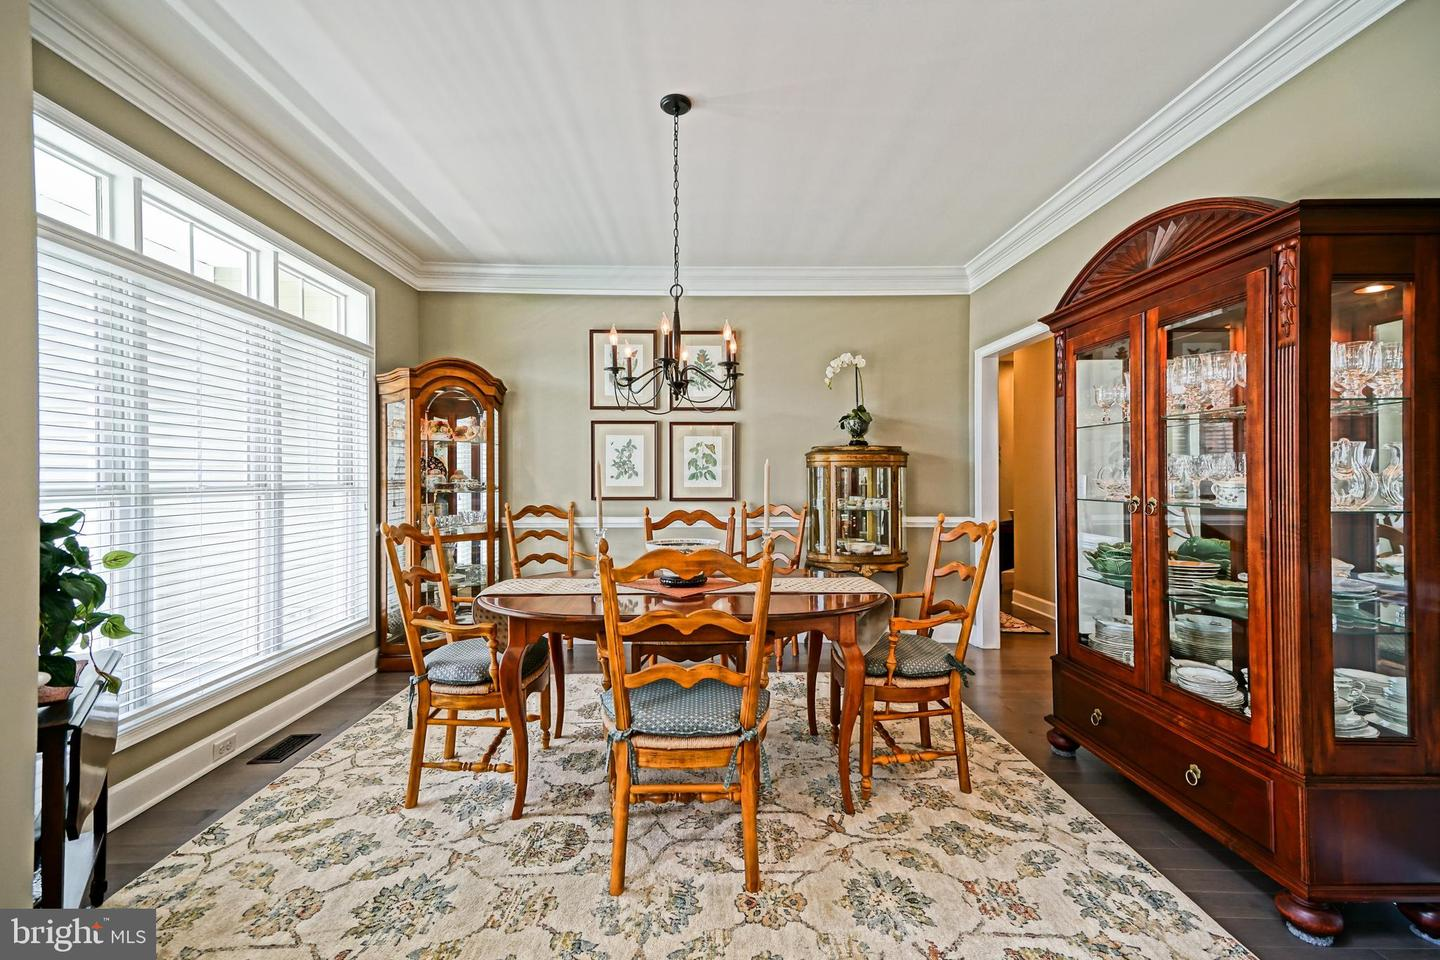 DESU139128-301667379130-2019-08-05-10-43-56 35222 Overfalls Dr N | Lewes, DE Real Estate For Sale | MLS# Desu139128  - Lee Ann Group